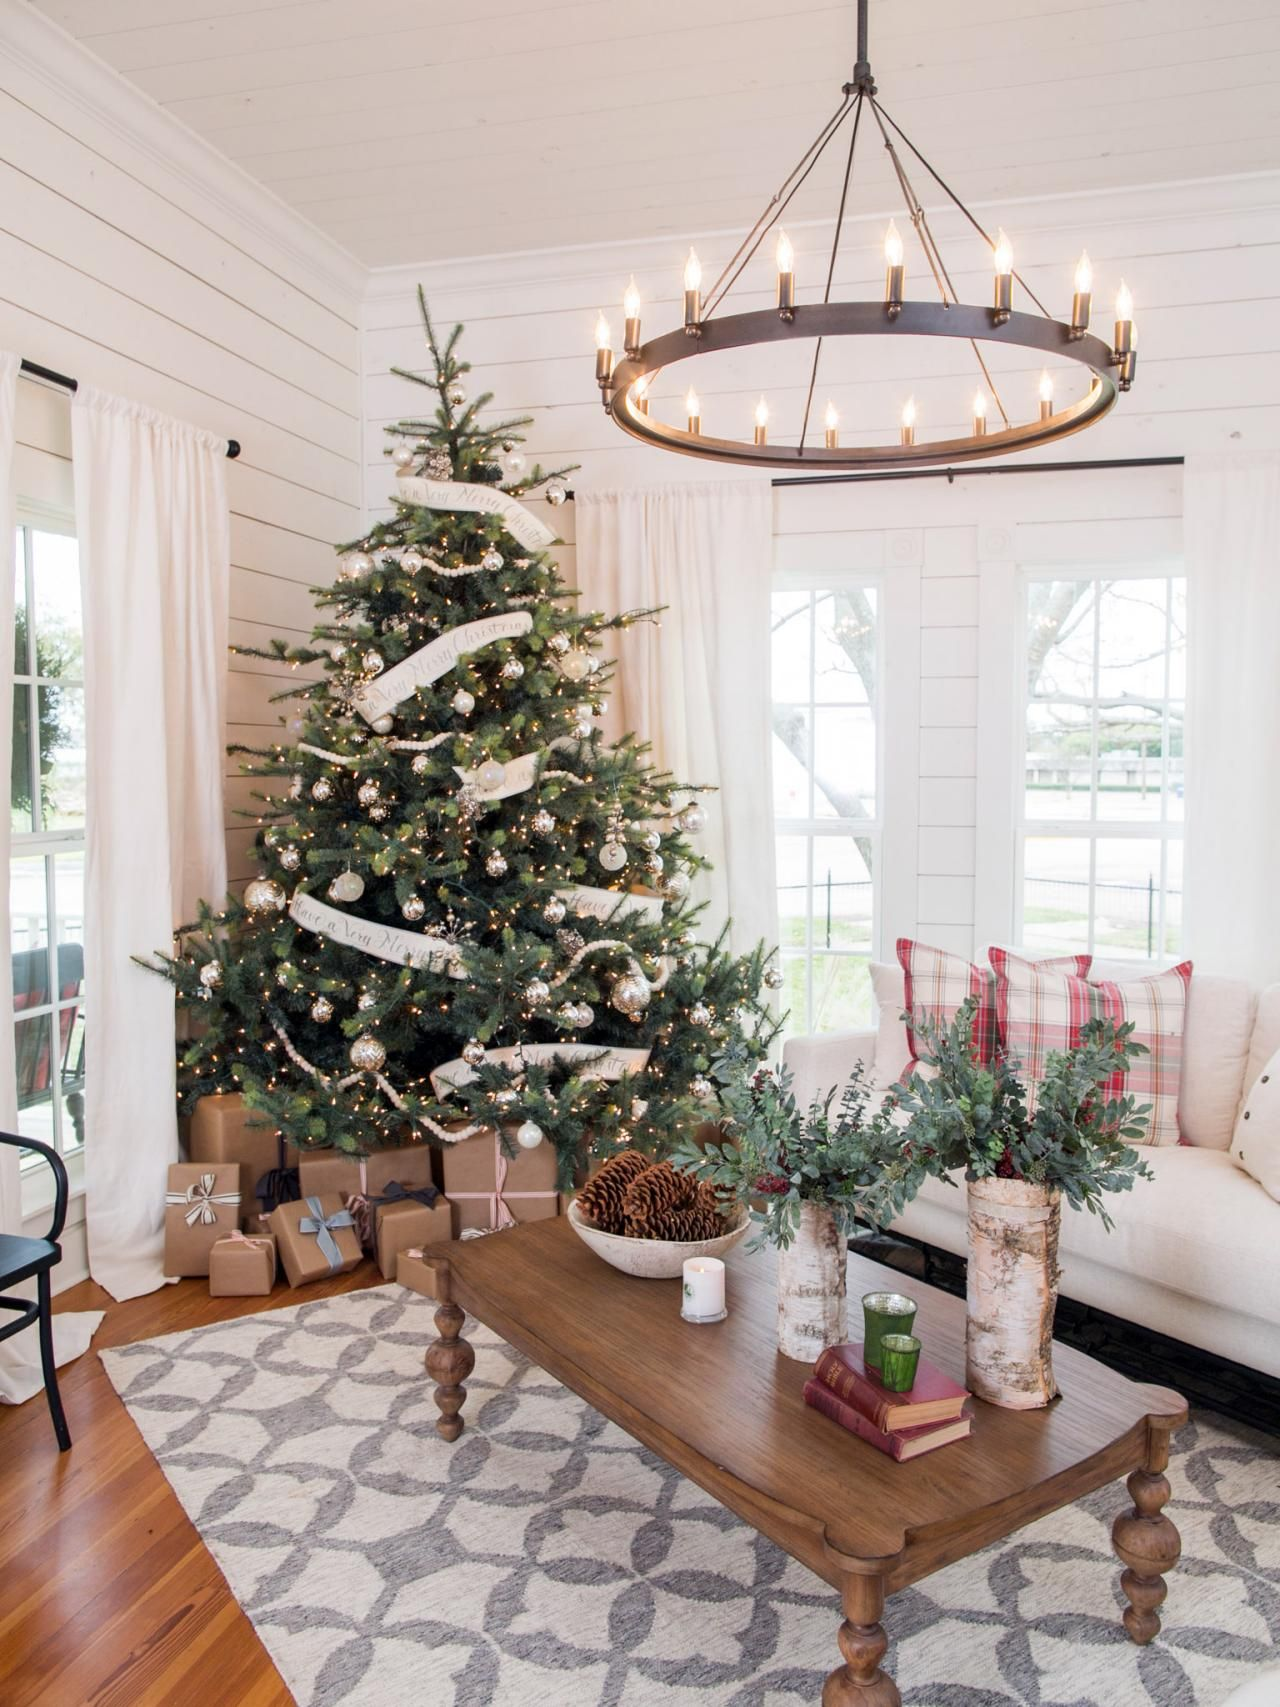 dress your christmas tree to impress christmas living room decor christmas tree - Joanna Gaines Christmas Decor